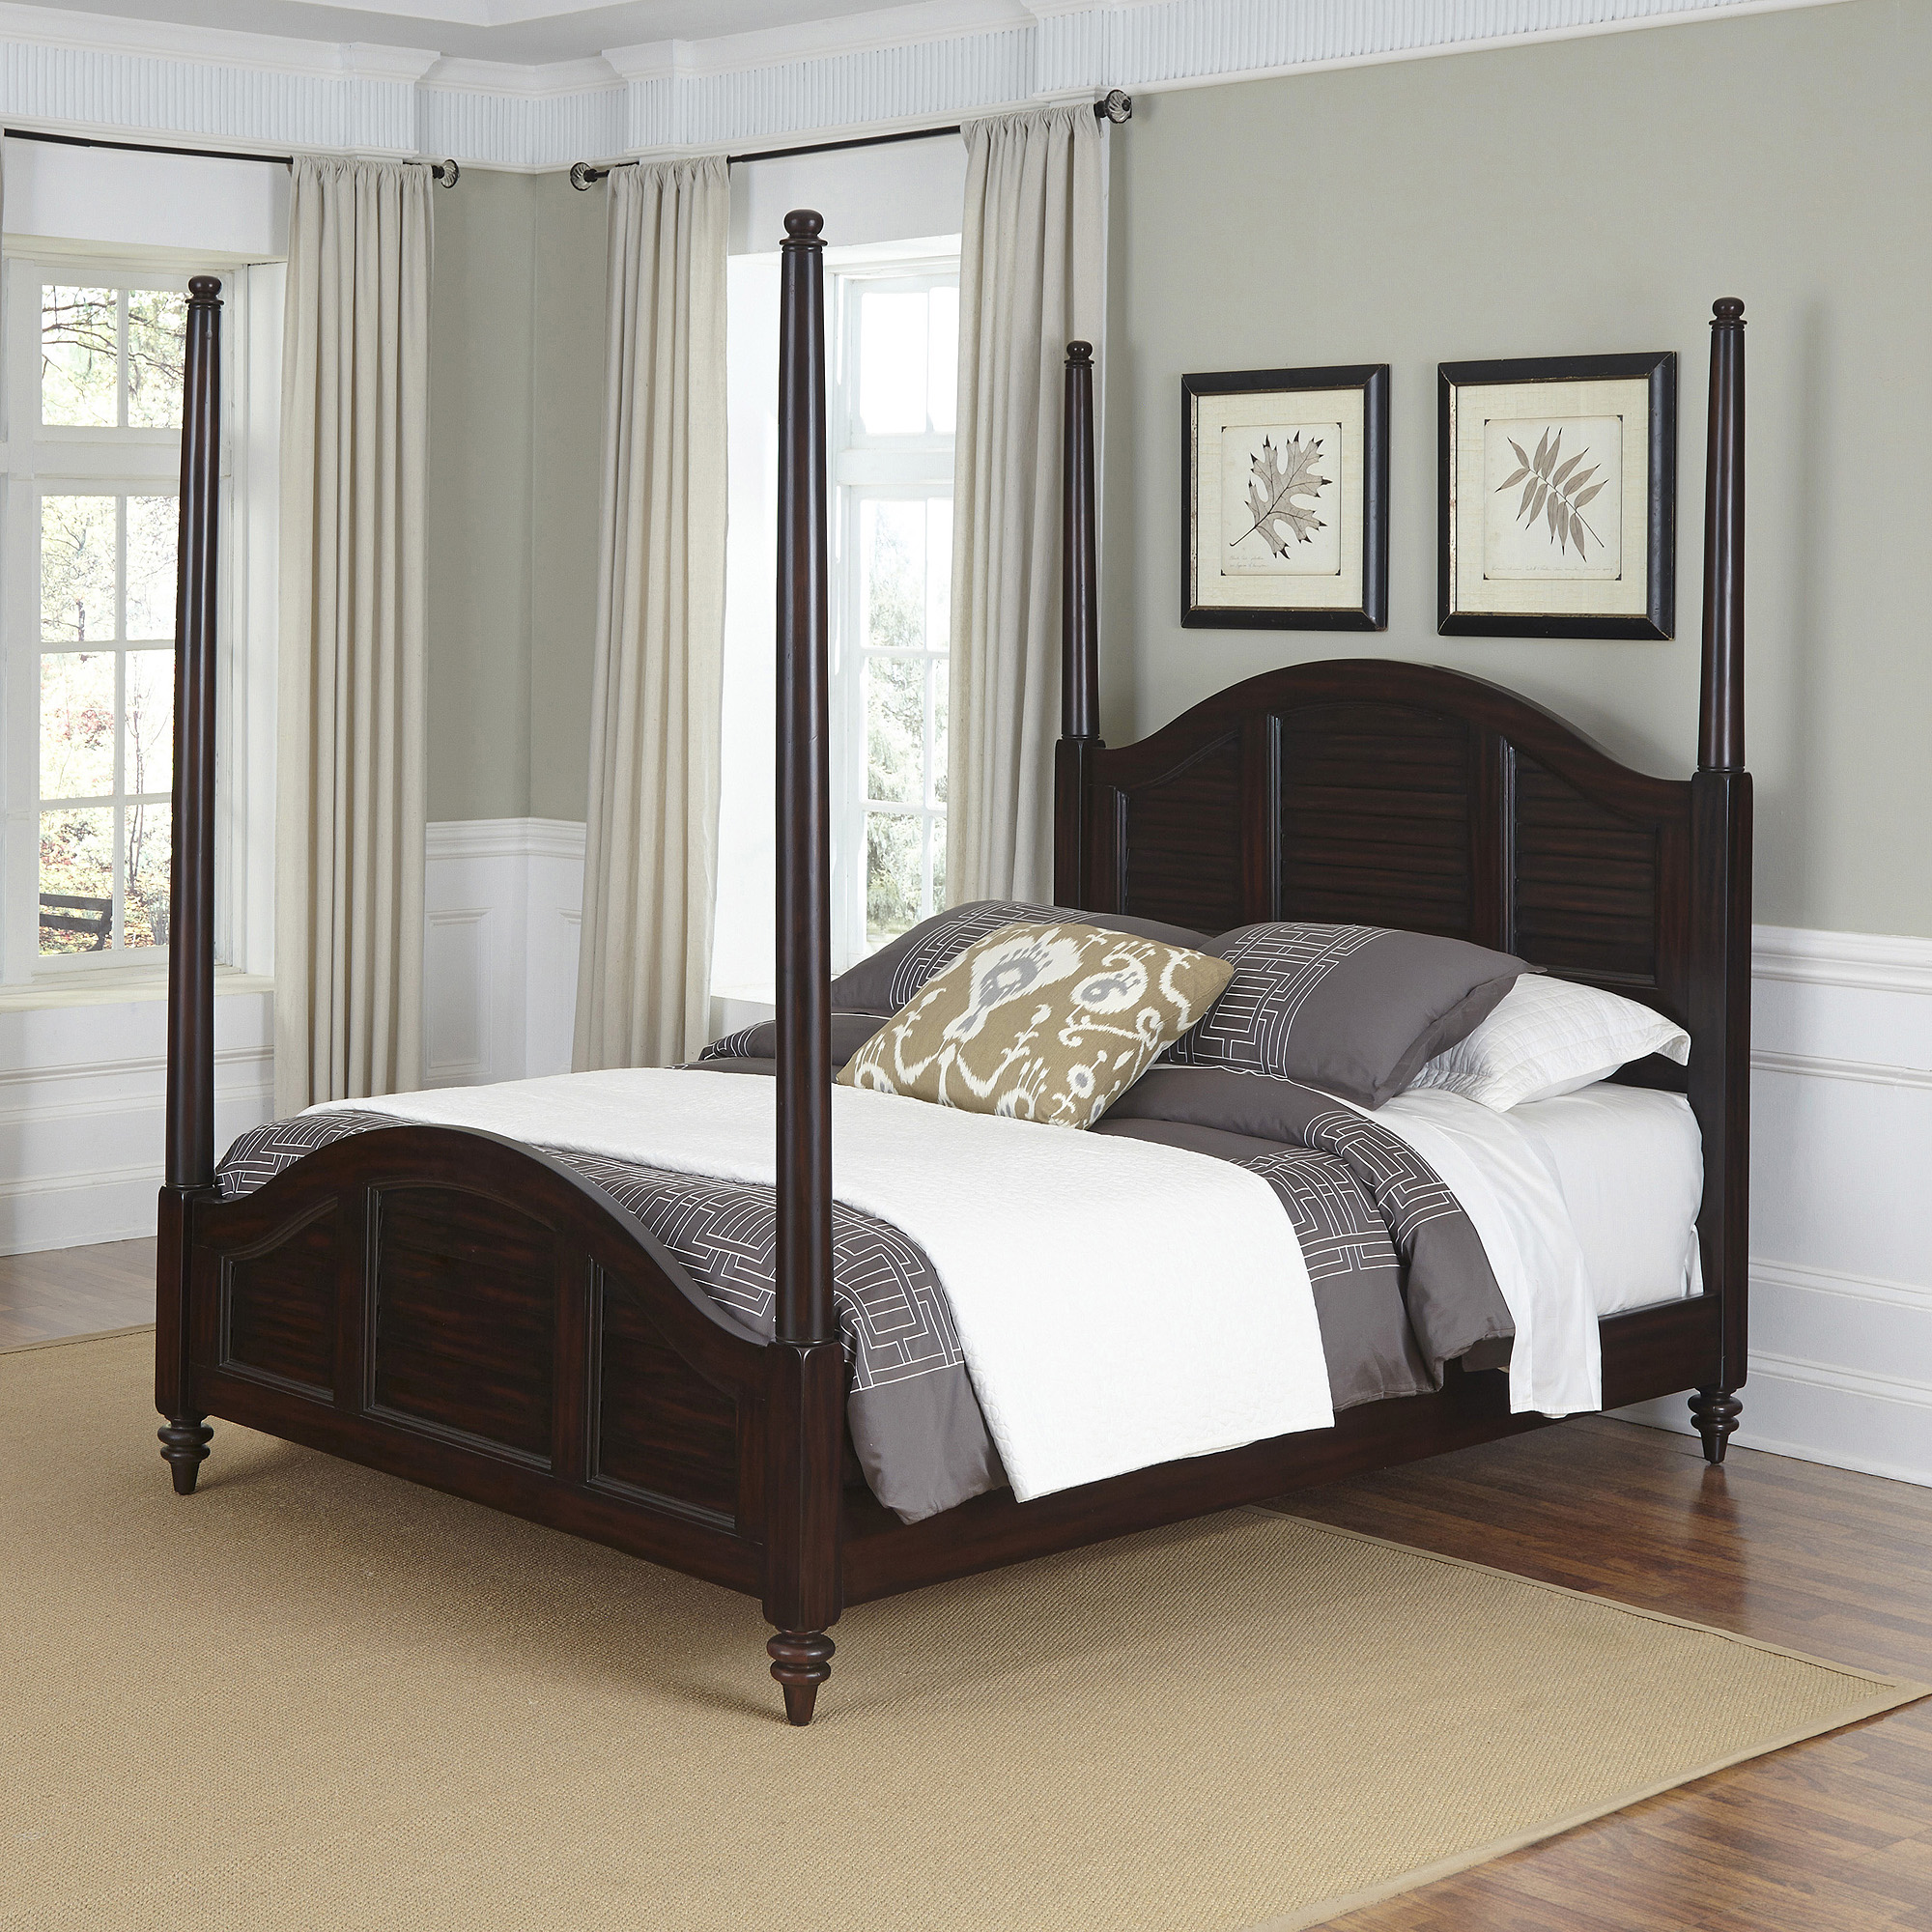 Home Styles Bermuda Queen Poster Bed Espreso Finish by Home Styles